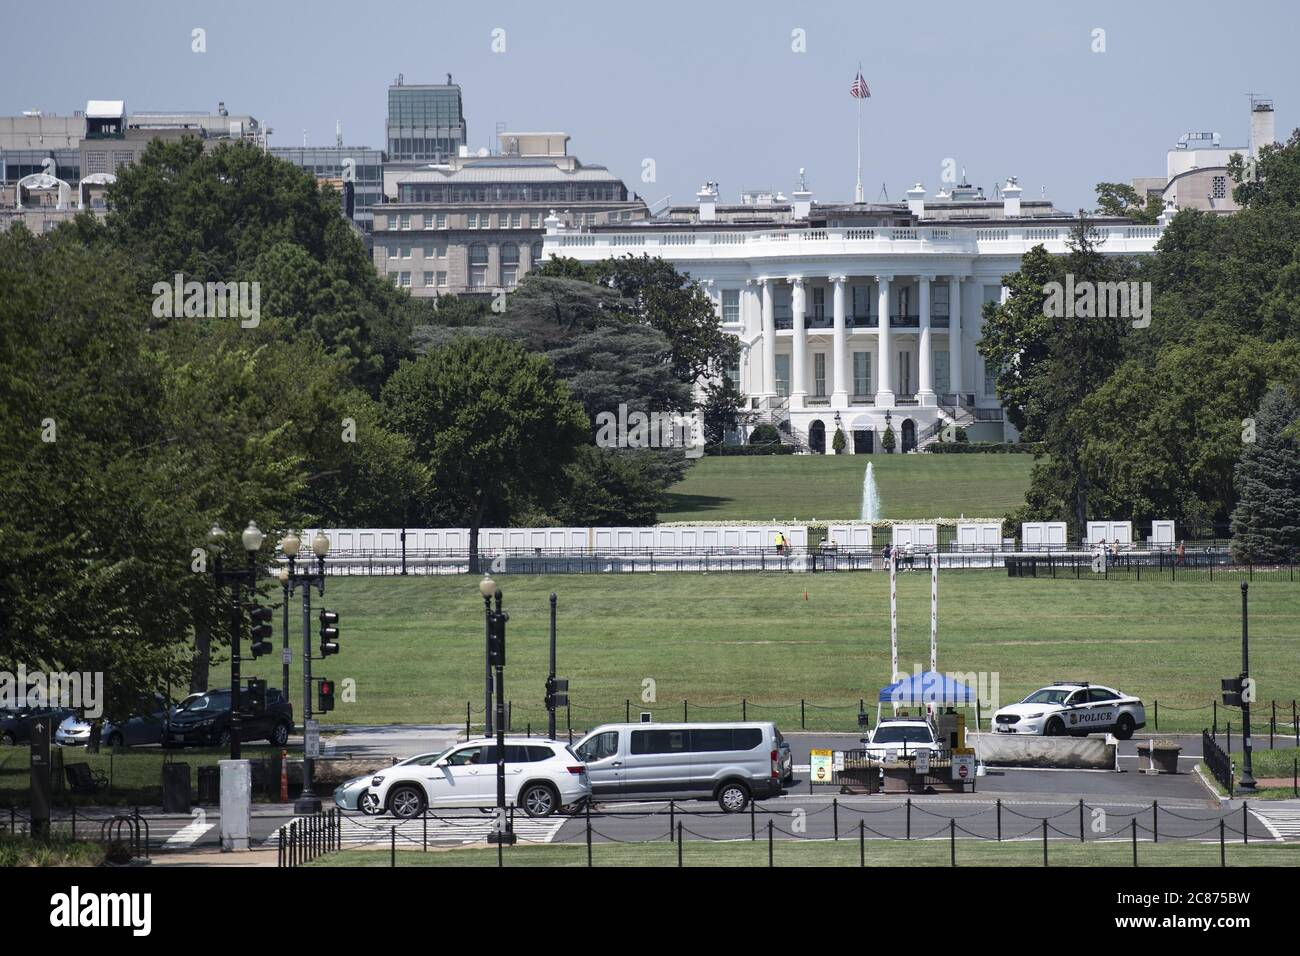 "Washington, USA. 21st July, 2020. Photo taken on July 21, 2020 shows the White House in Washington, DC, the United States. U.S. President Donald Trump said Tuesday afternoon that the coronavirus pandemic in the United States will probably ""get worse before it gets better."" More than 3.8 million people in the United States have infected with the virus, with more than 141,000 deaths, according to a count by Johns Hopkins University, as some states, including Florida, are seeing a surge in cases. Credit: Liu Jie/Xinhua/Alamy Live News Stock Photo"